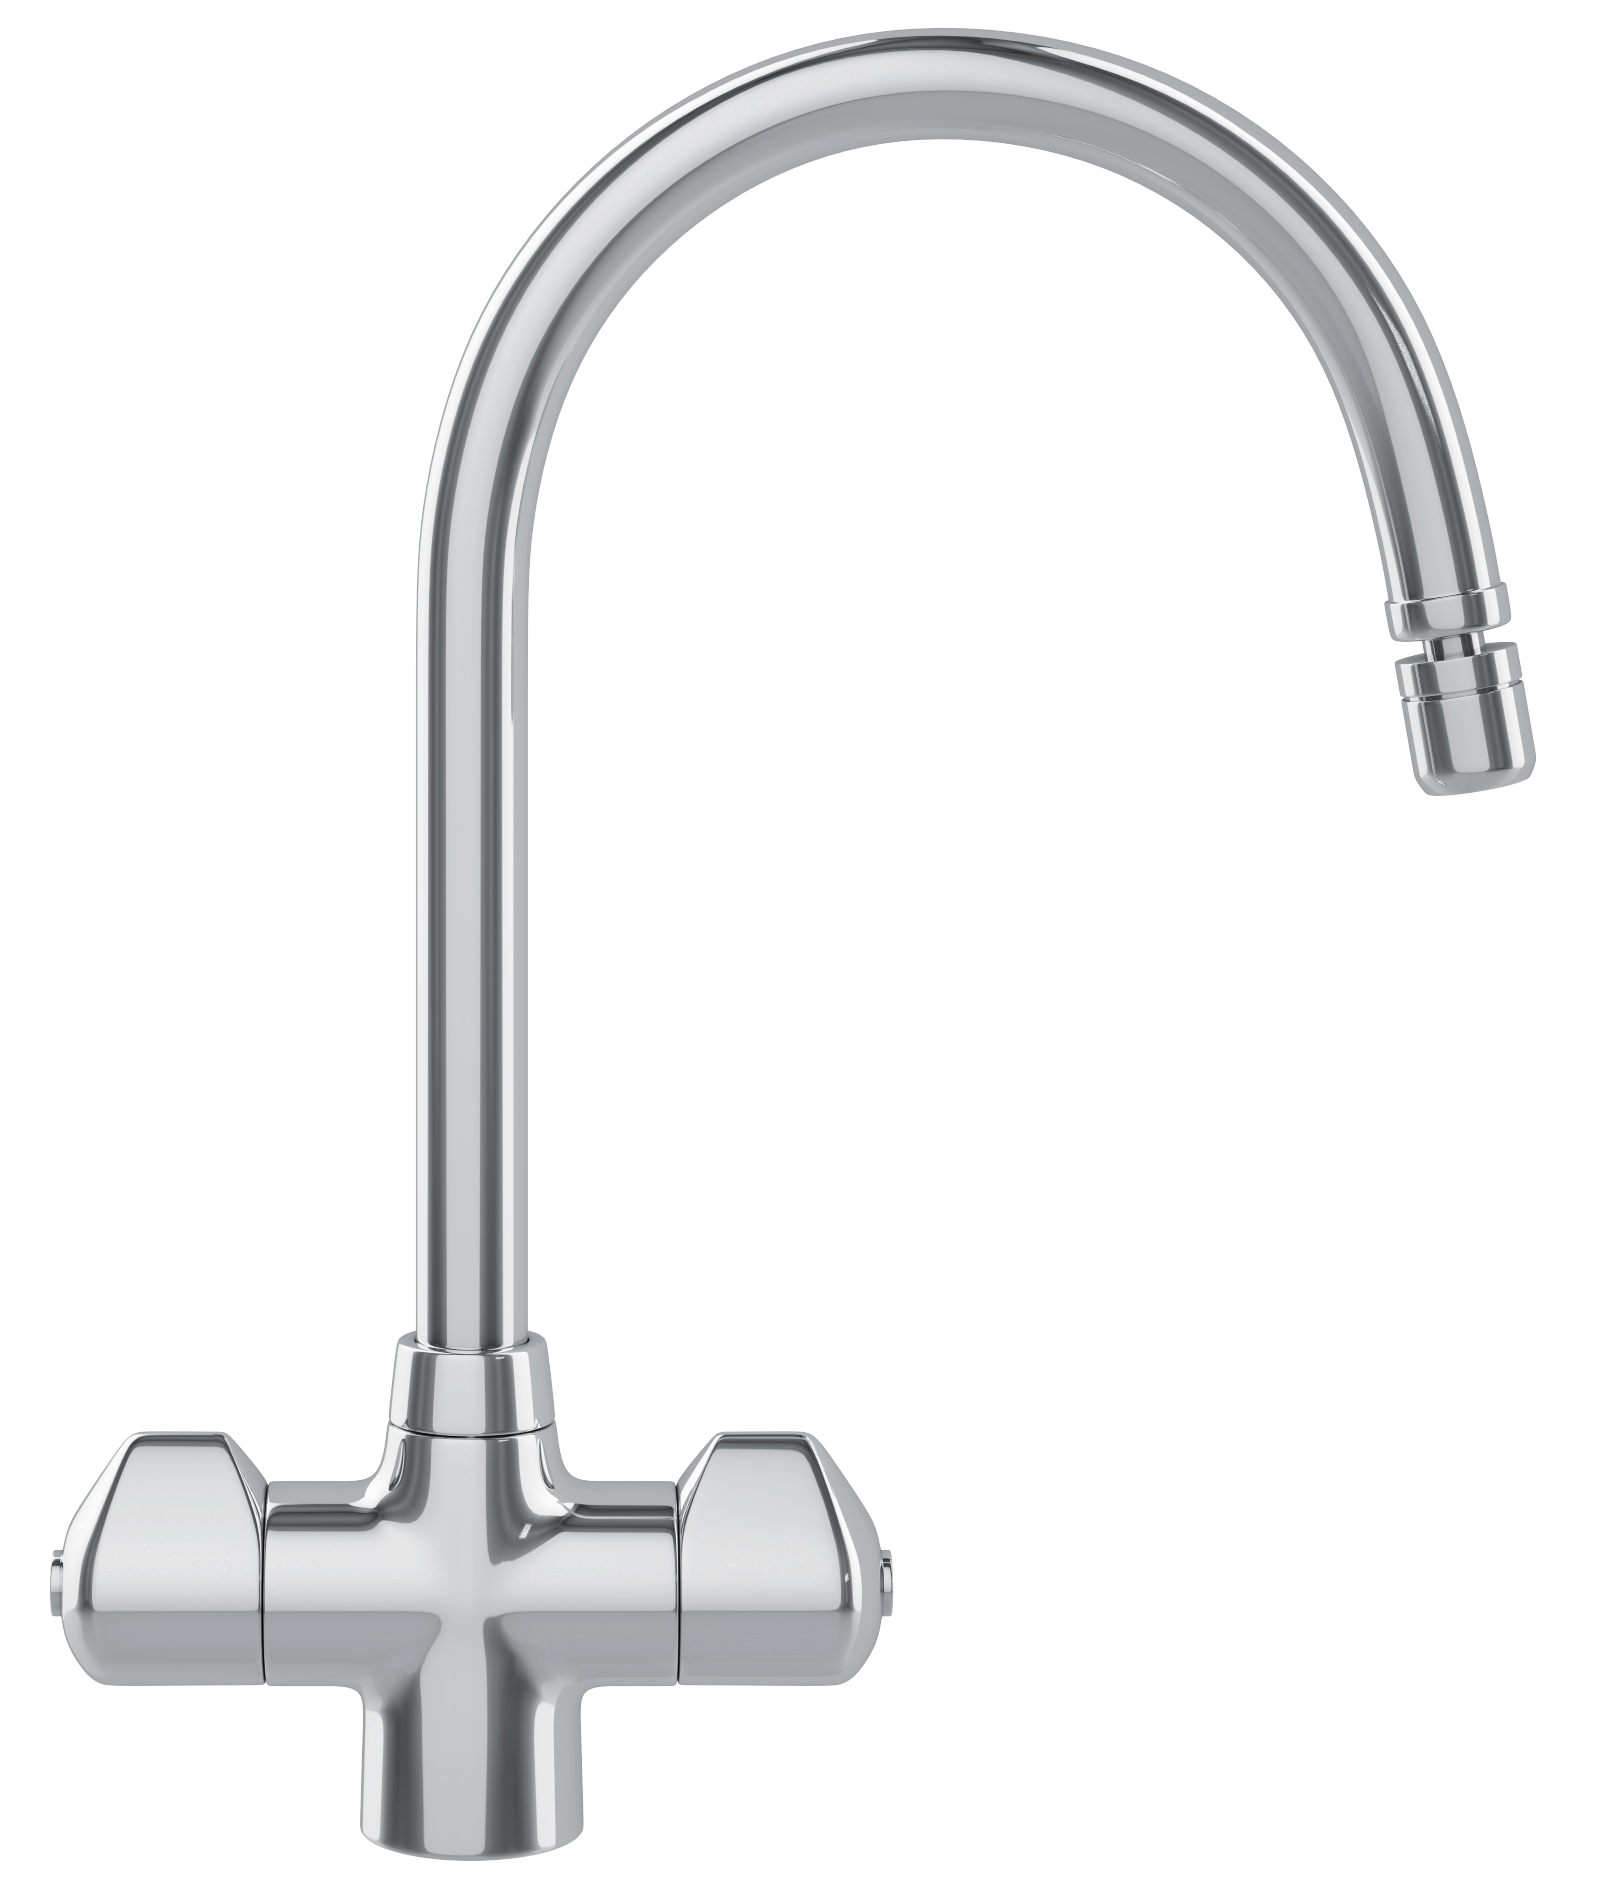 ... taps kitchen mixer taps franke moselle kitchen sink mixer tap chrome